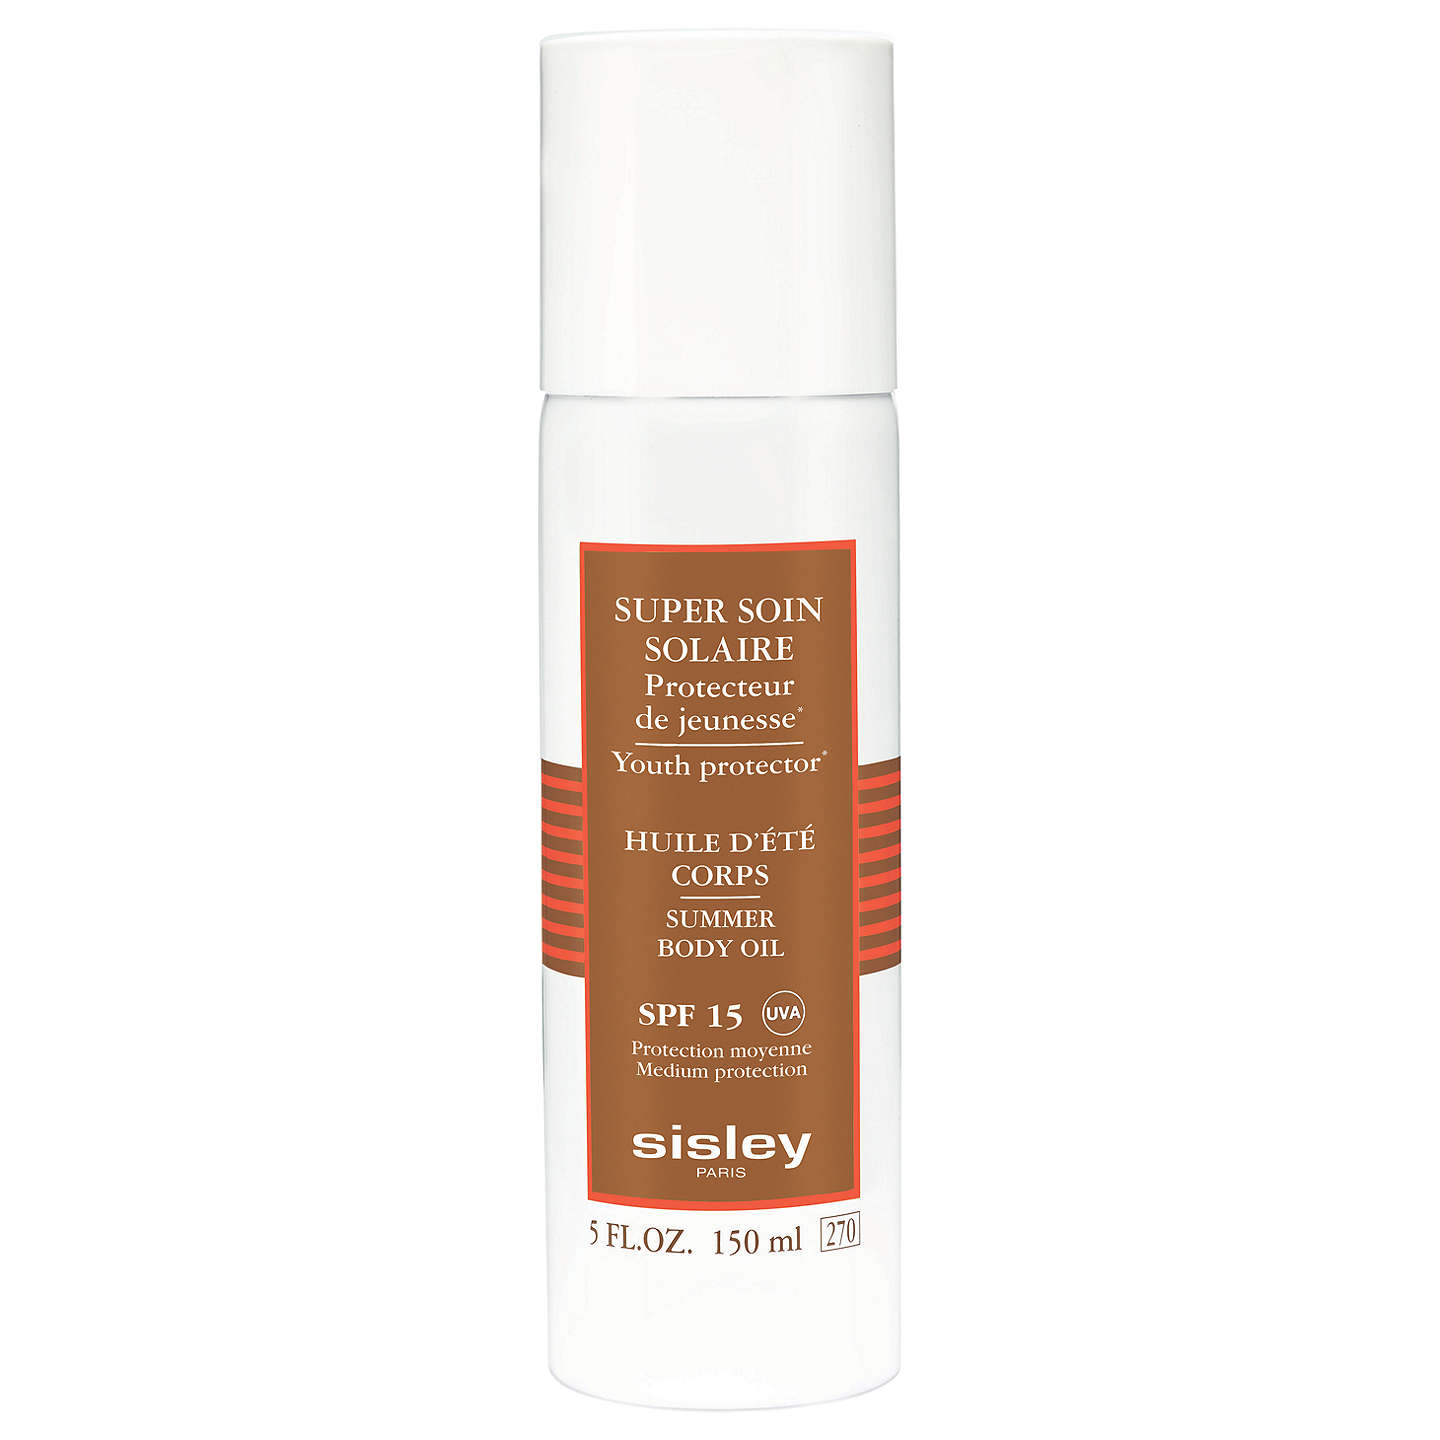 BuySisley Super Soin Solaire Silky Body Oil Sun Care SPF 15, 150ml Online at johnlewis.com